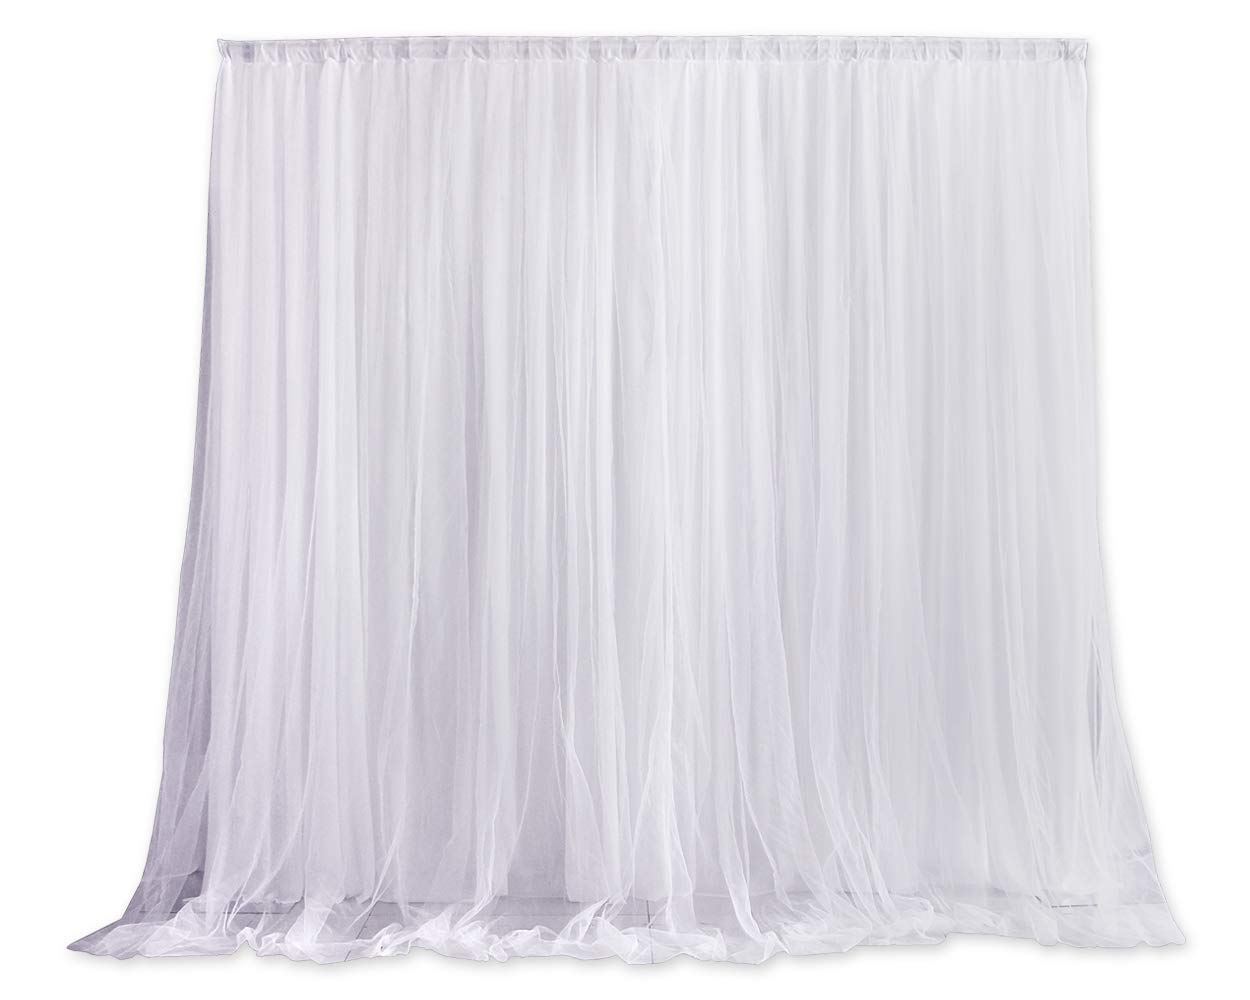 ACE SELECT 6.5ft x 6.5ft Tulle Photography Backdrop Curtains Wedding Party Backdrops Photo Background Decoration for Studio/Birthday/Baby Shower/Christmas/Prom (White) by ACE SELECT